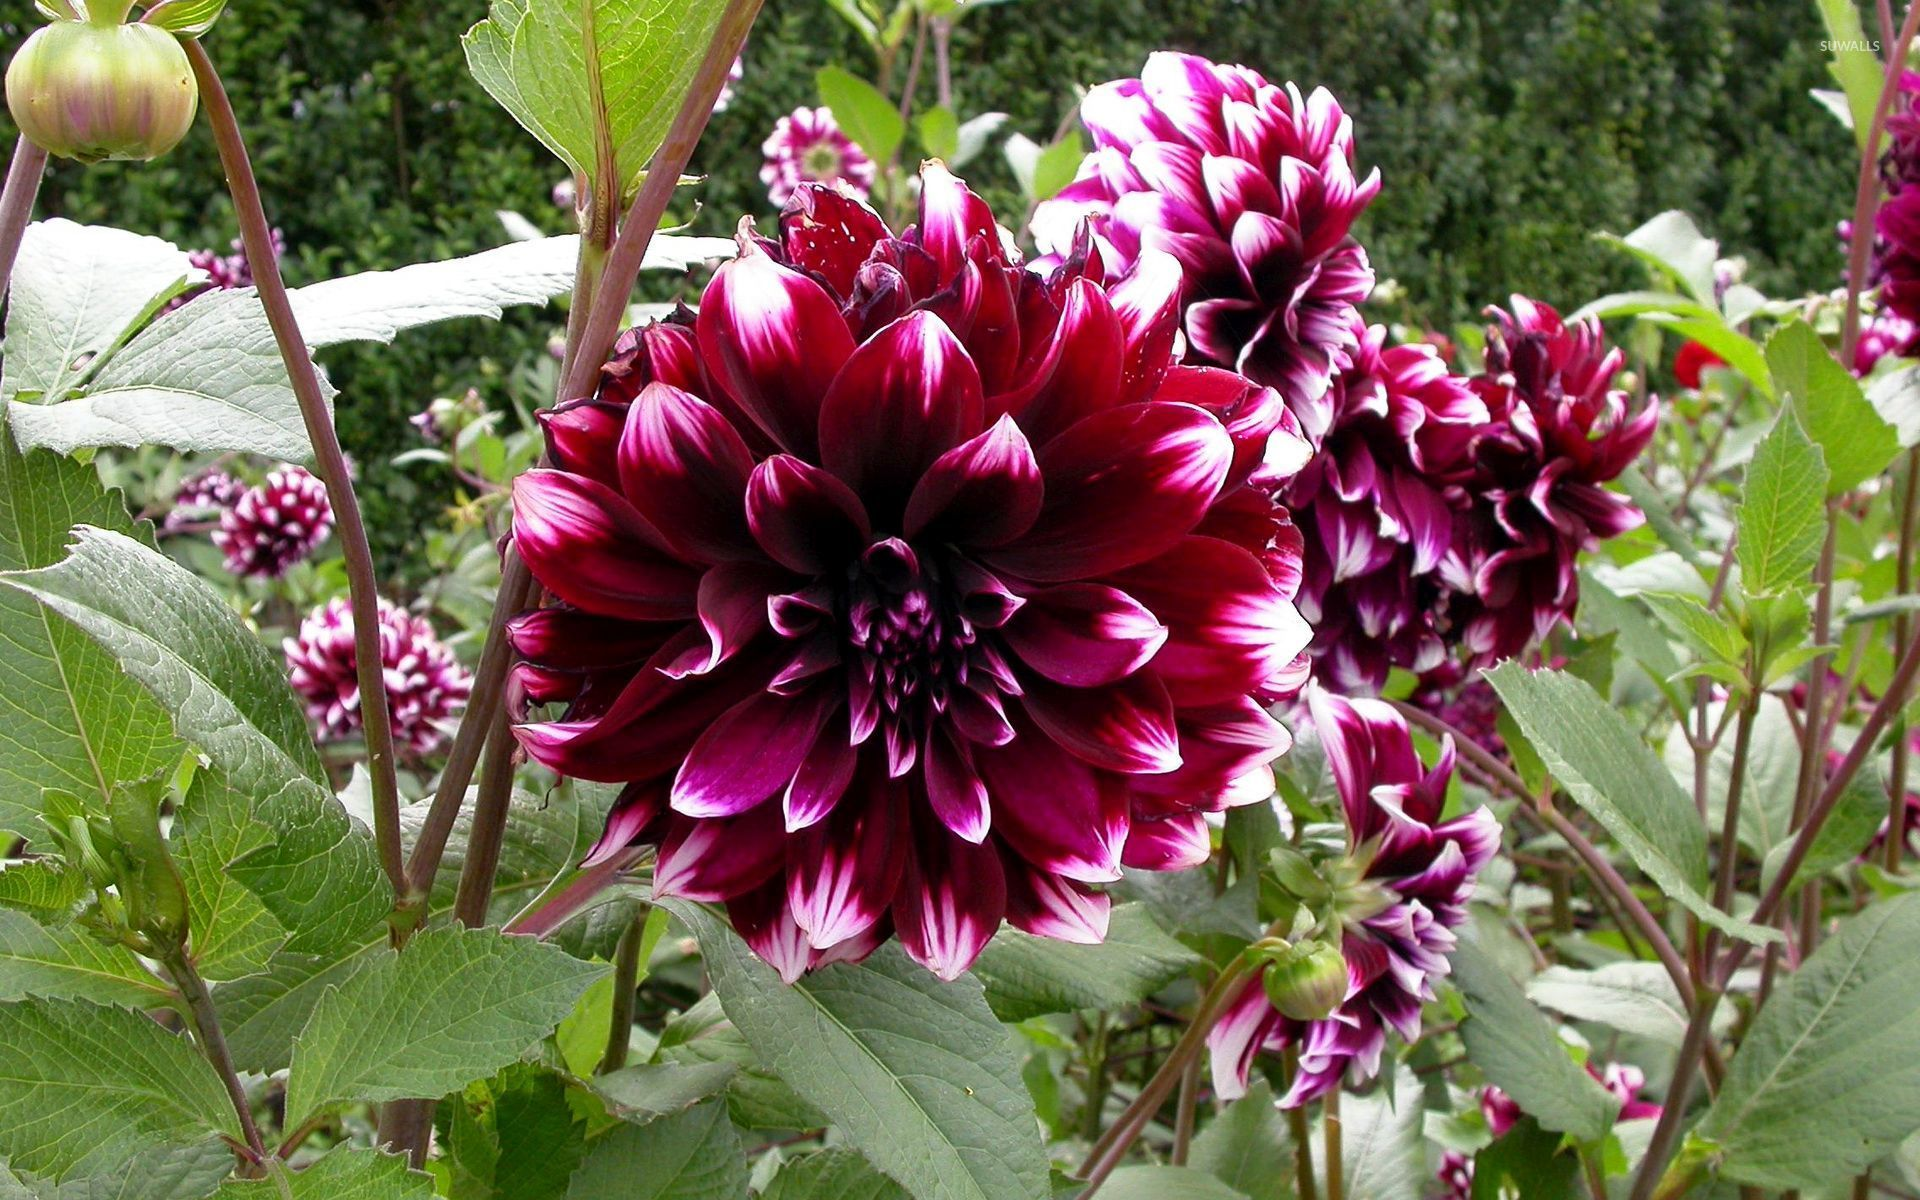 Splendid Dahlias Wallpaper Flower Wallpapers 54250 HD Wallpapers Download Free Images Wallpaper [1000image.com]